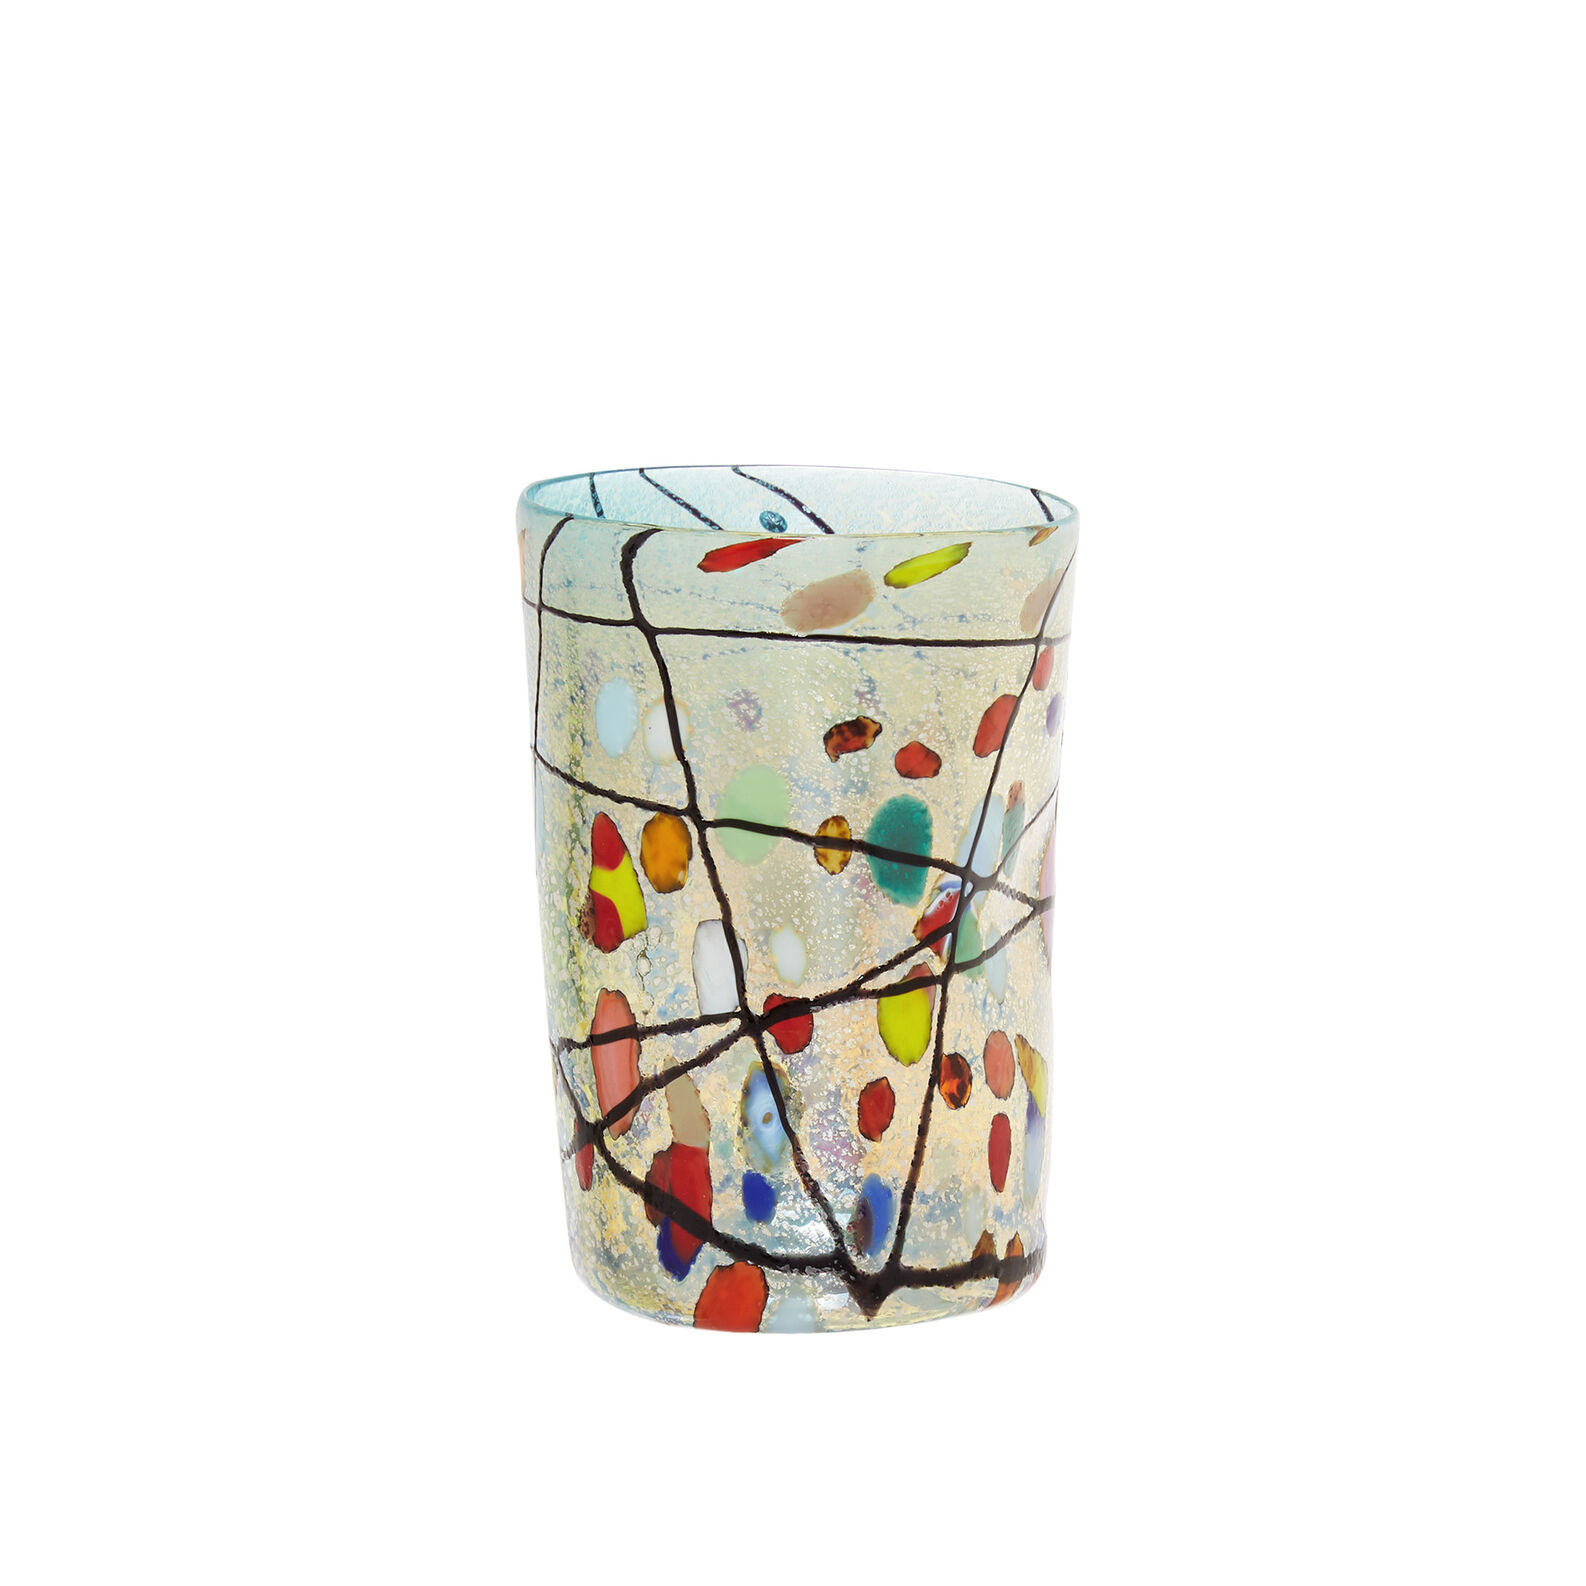 Murano glass tumbler with Kandinsky decoration